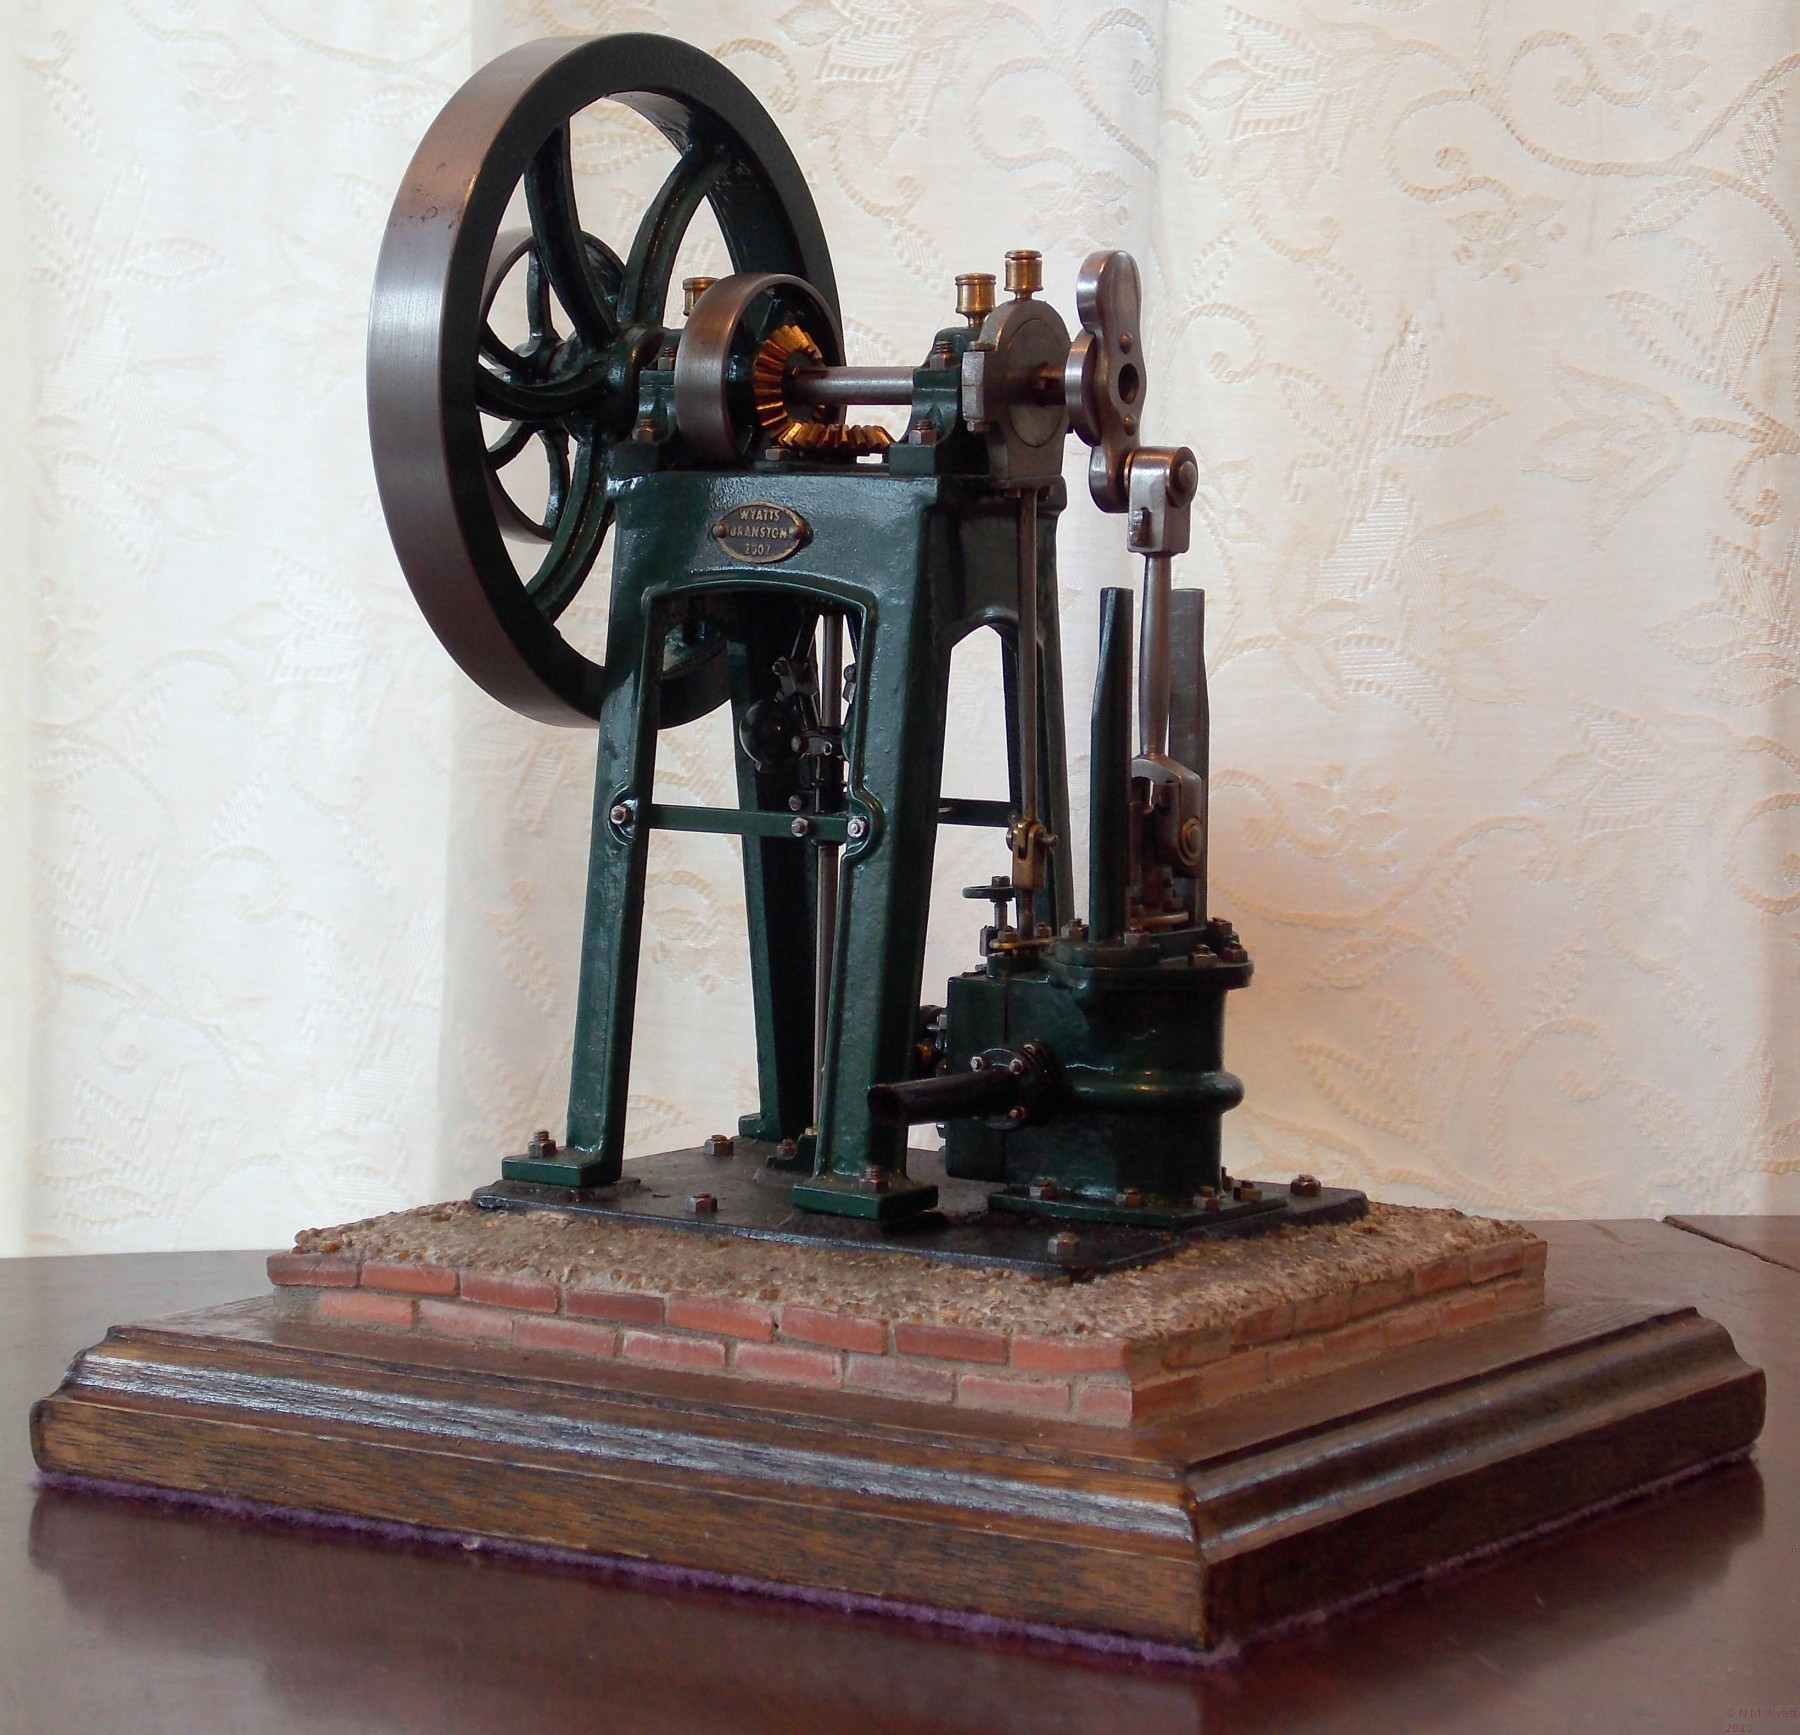 Model of Vertical Mill Engine